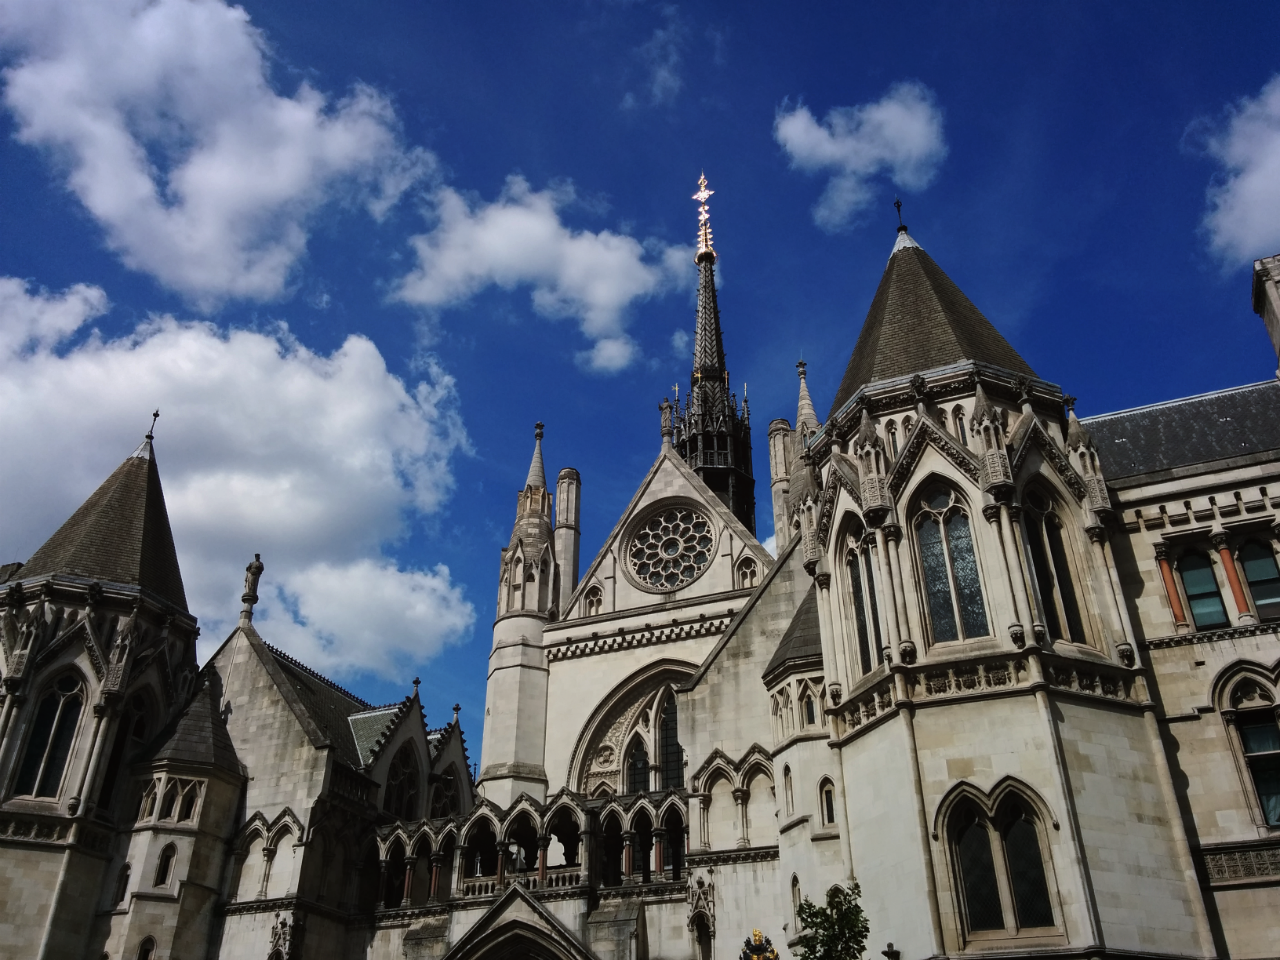 Royal Courts of Justice, London, photographed on 17 August 2015